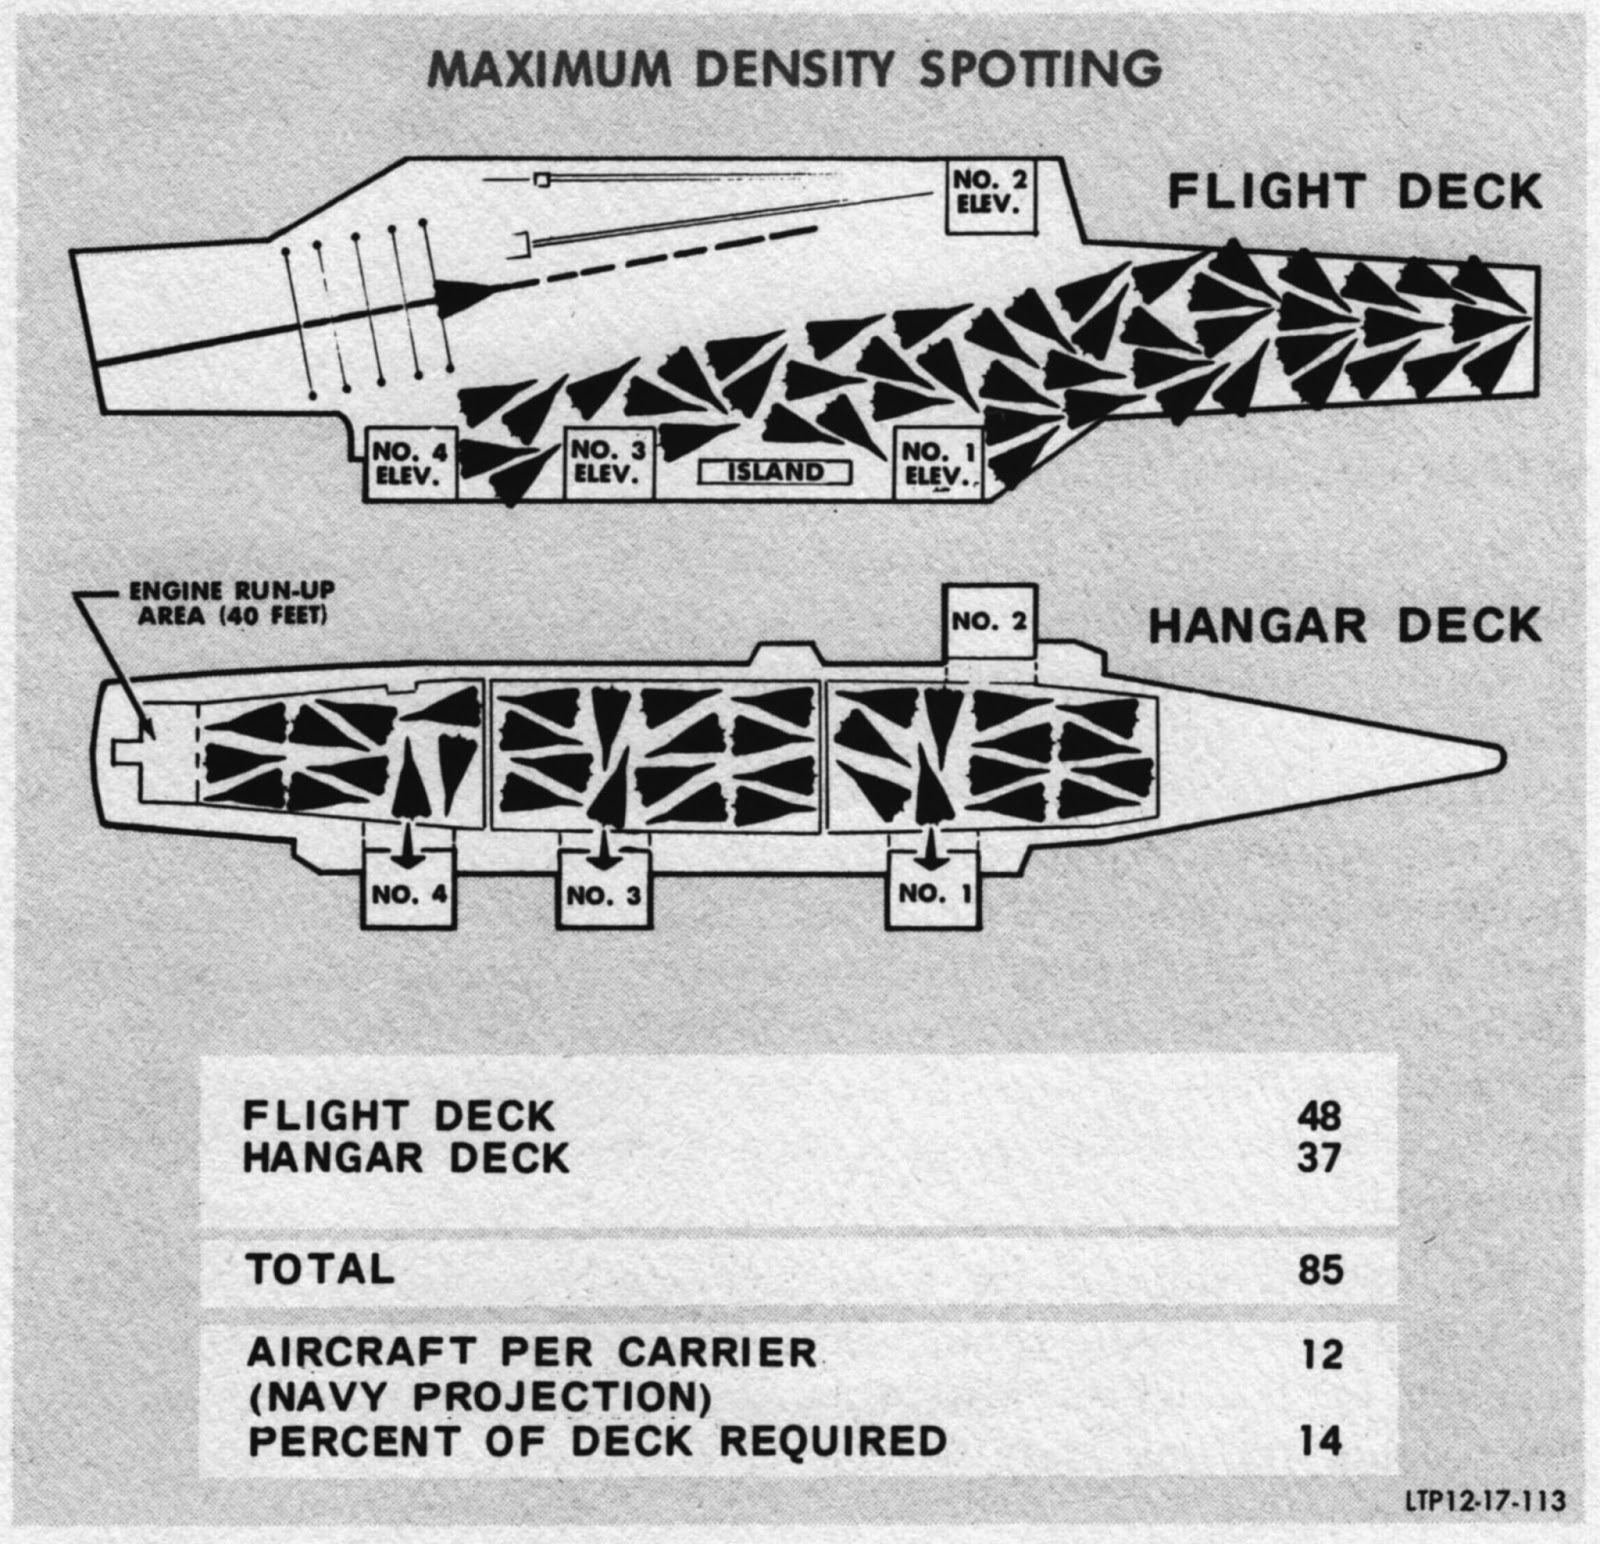 us navy aircraft history making the most of the space available